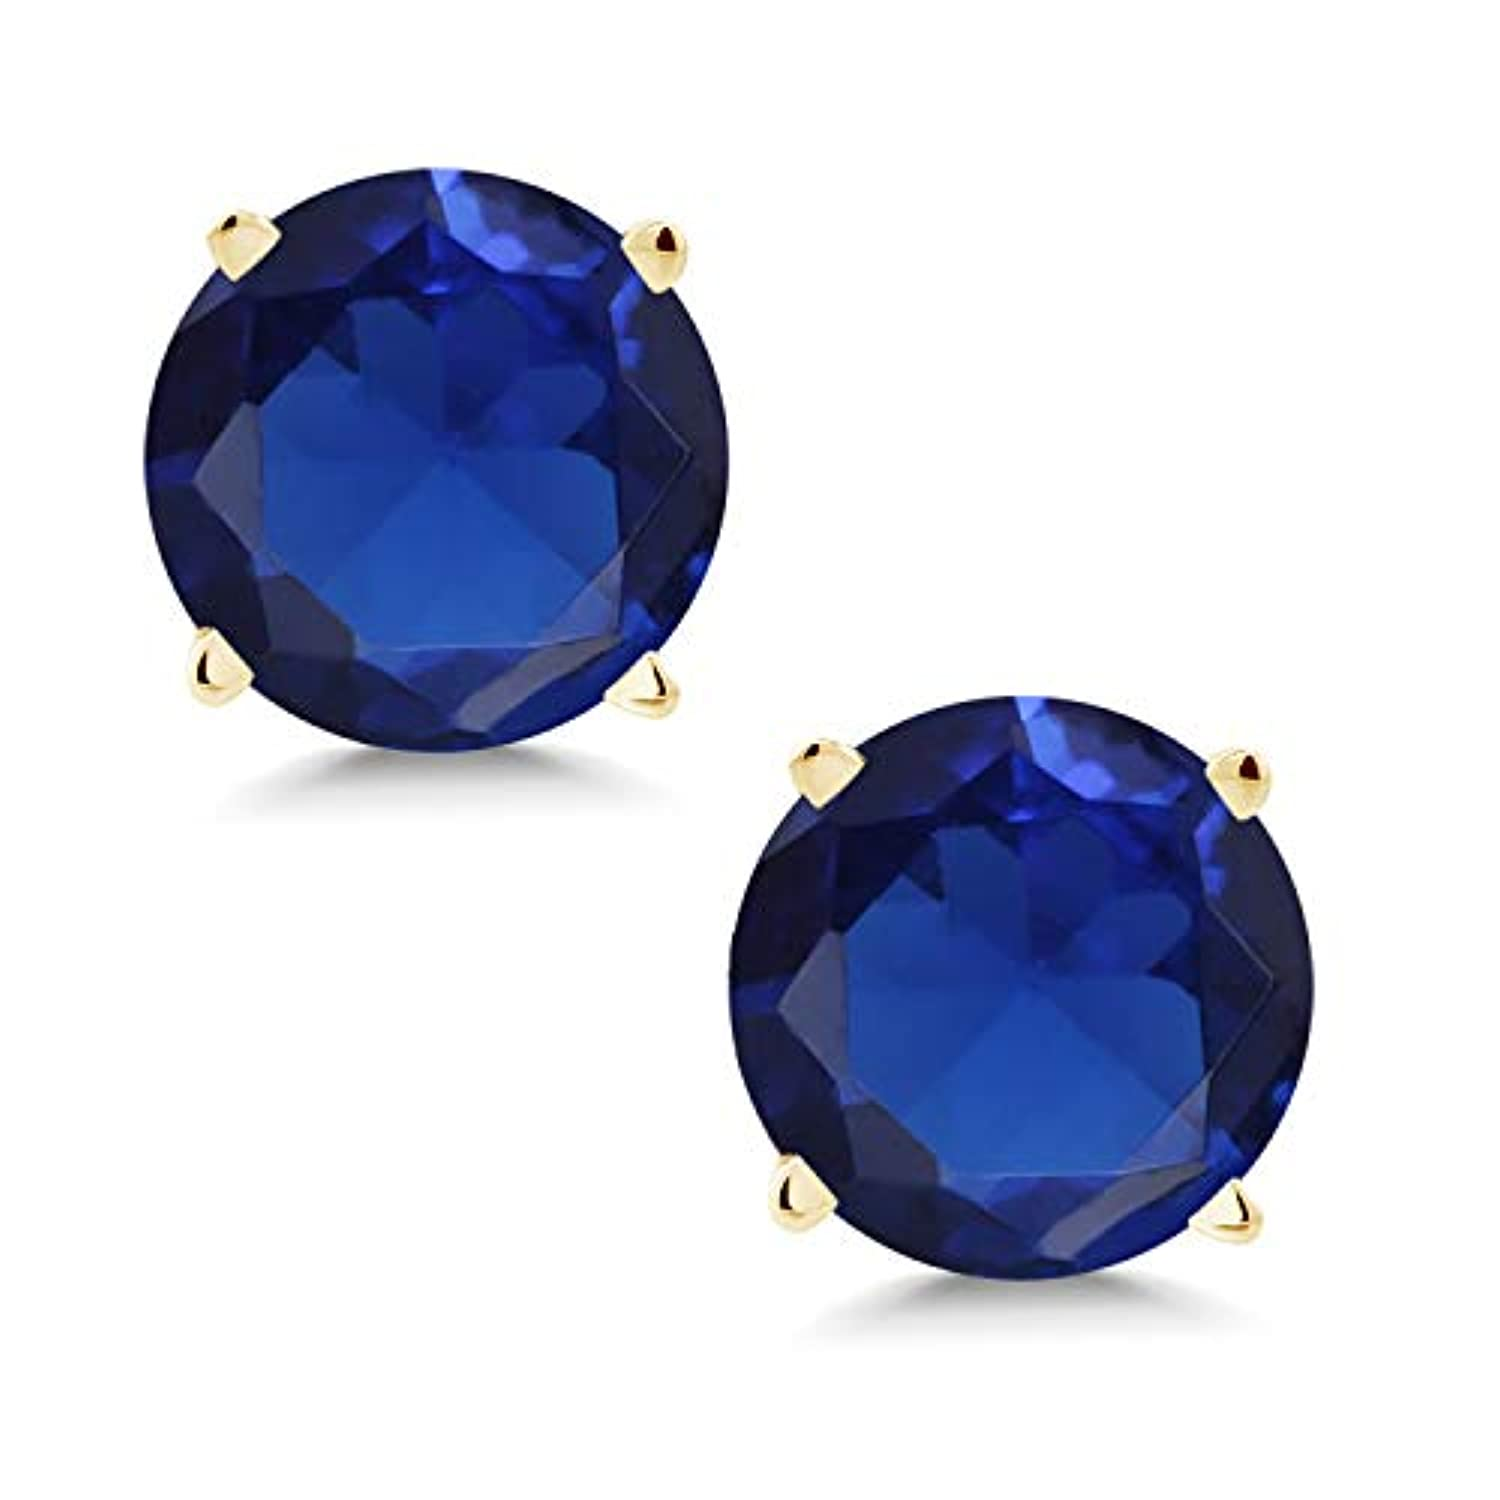 14K Gold Blue Created Sapphire Stud Earrings For Women